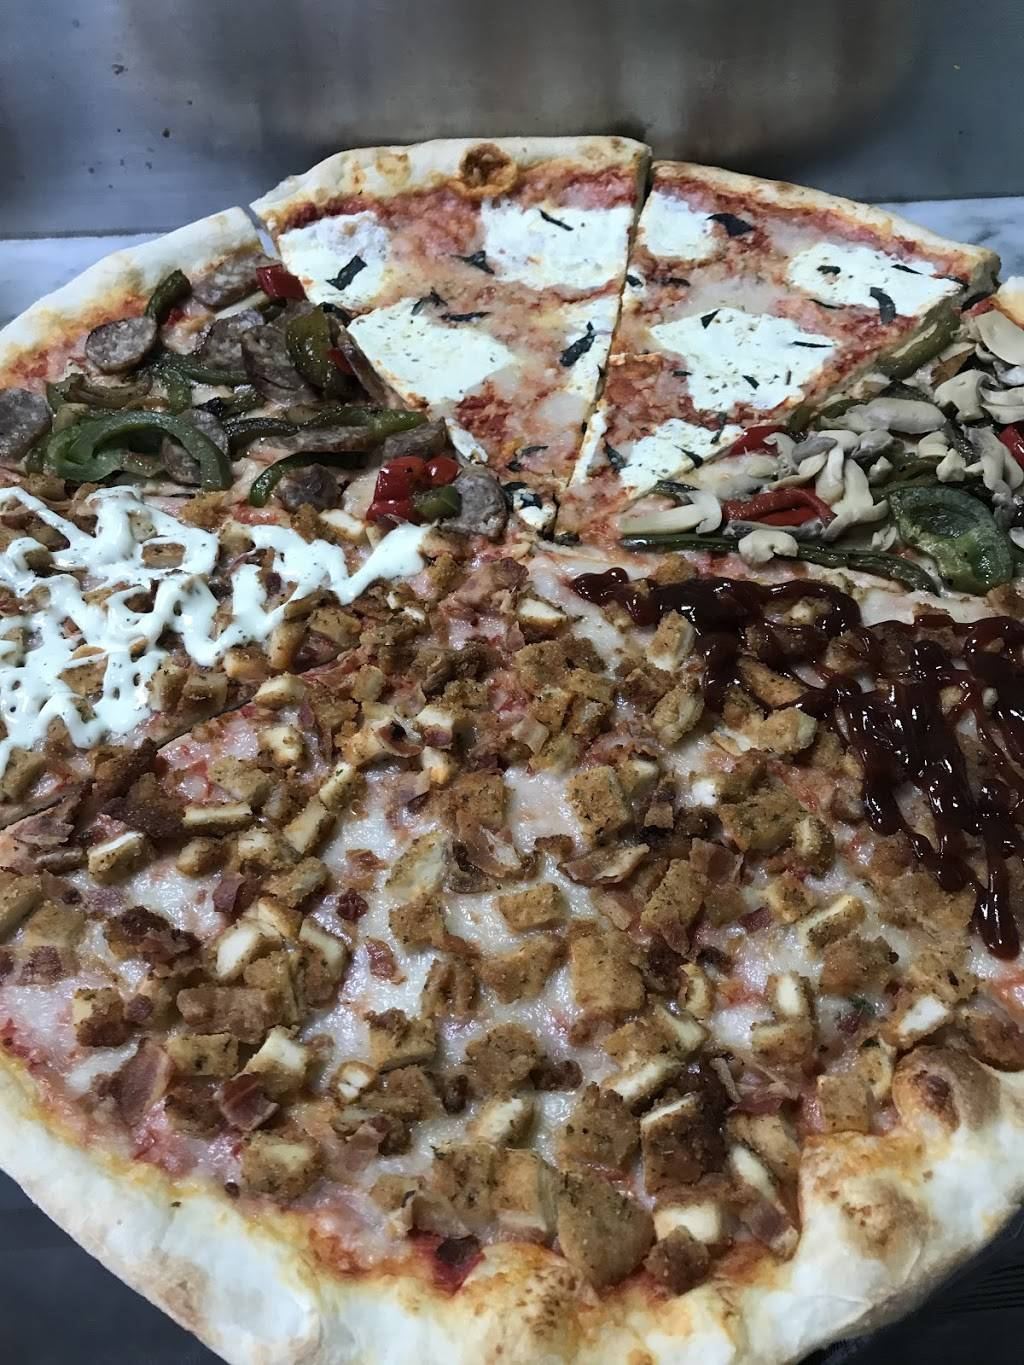 Delicious Pizza Cafe Rest. | restaurant | 269 W Kingsbridge Rd, Bronx, NY 10463, USA | 7188845500 OR +1 718-884-5500